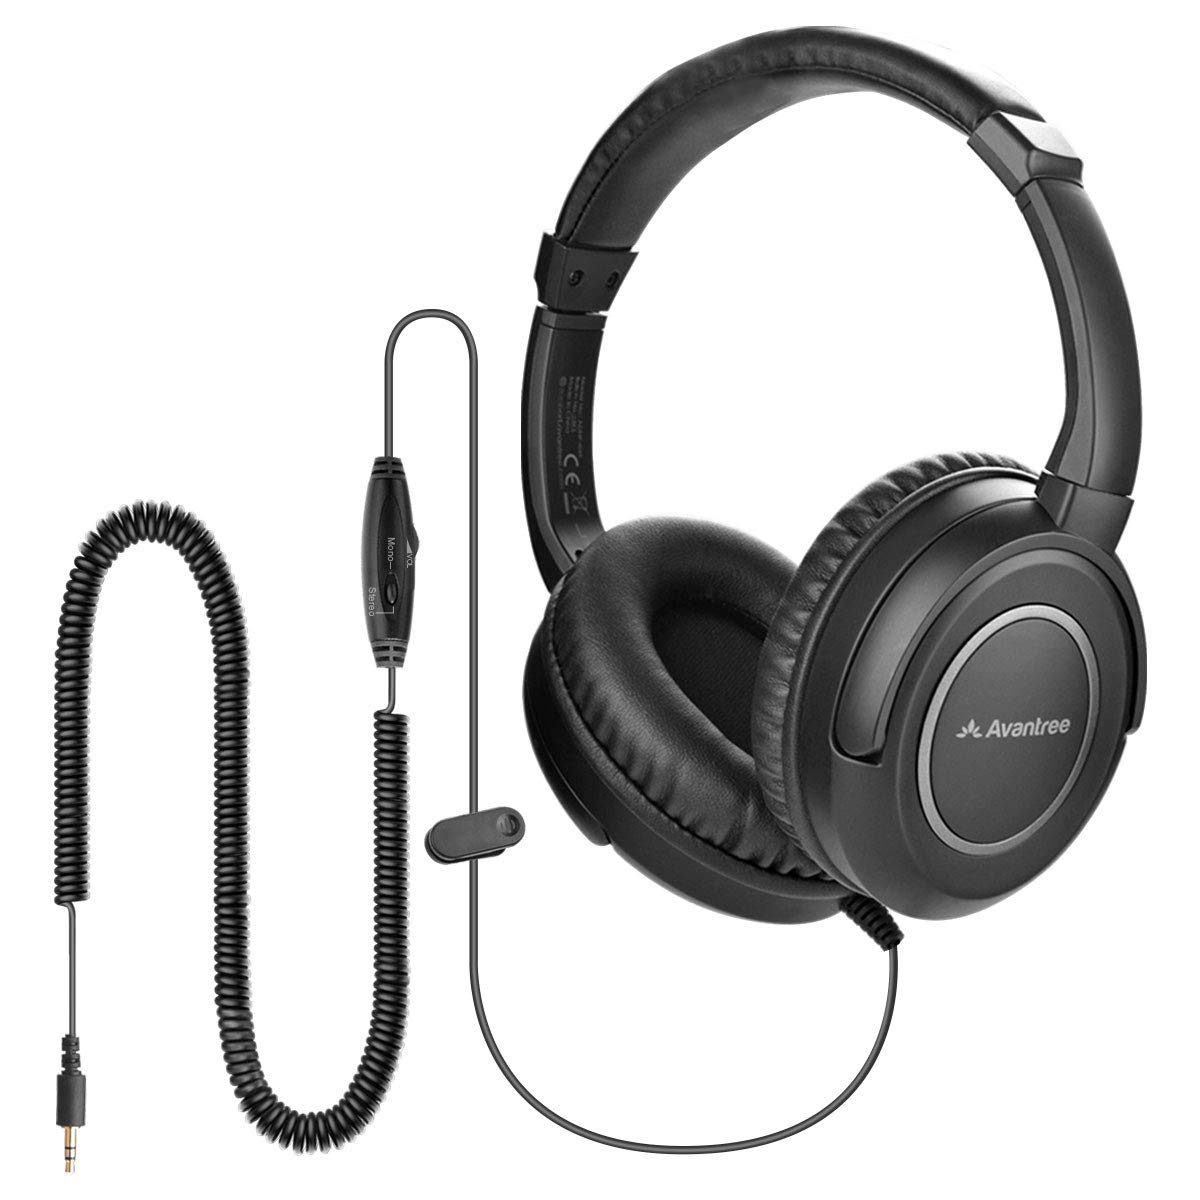 Avantree HF039 Long Coiled Cord Headphones for TV and PC with Volume Control, 16.4 Feet / 5M Extended Range Cable, 3.5mm AUX Audio, Stereo Sound Spiral Wired Over Ear Headphones